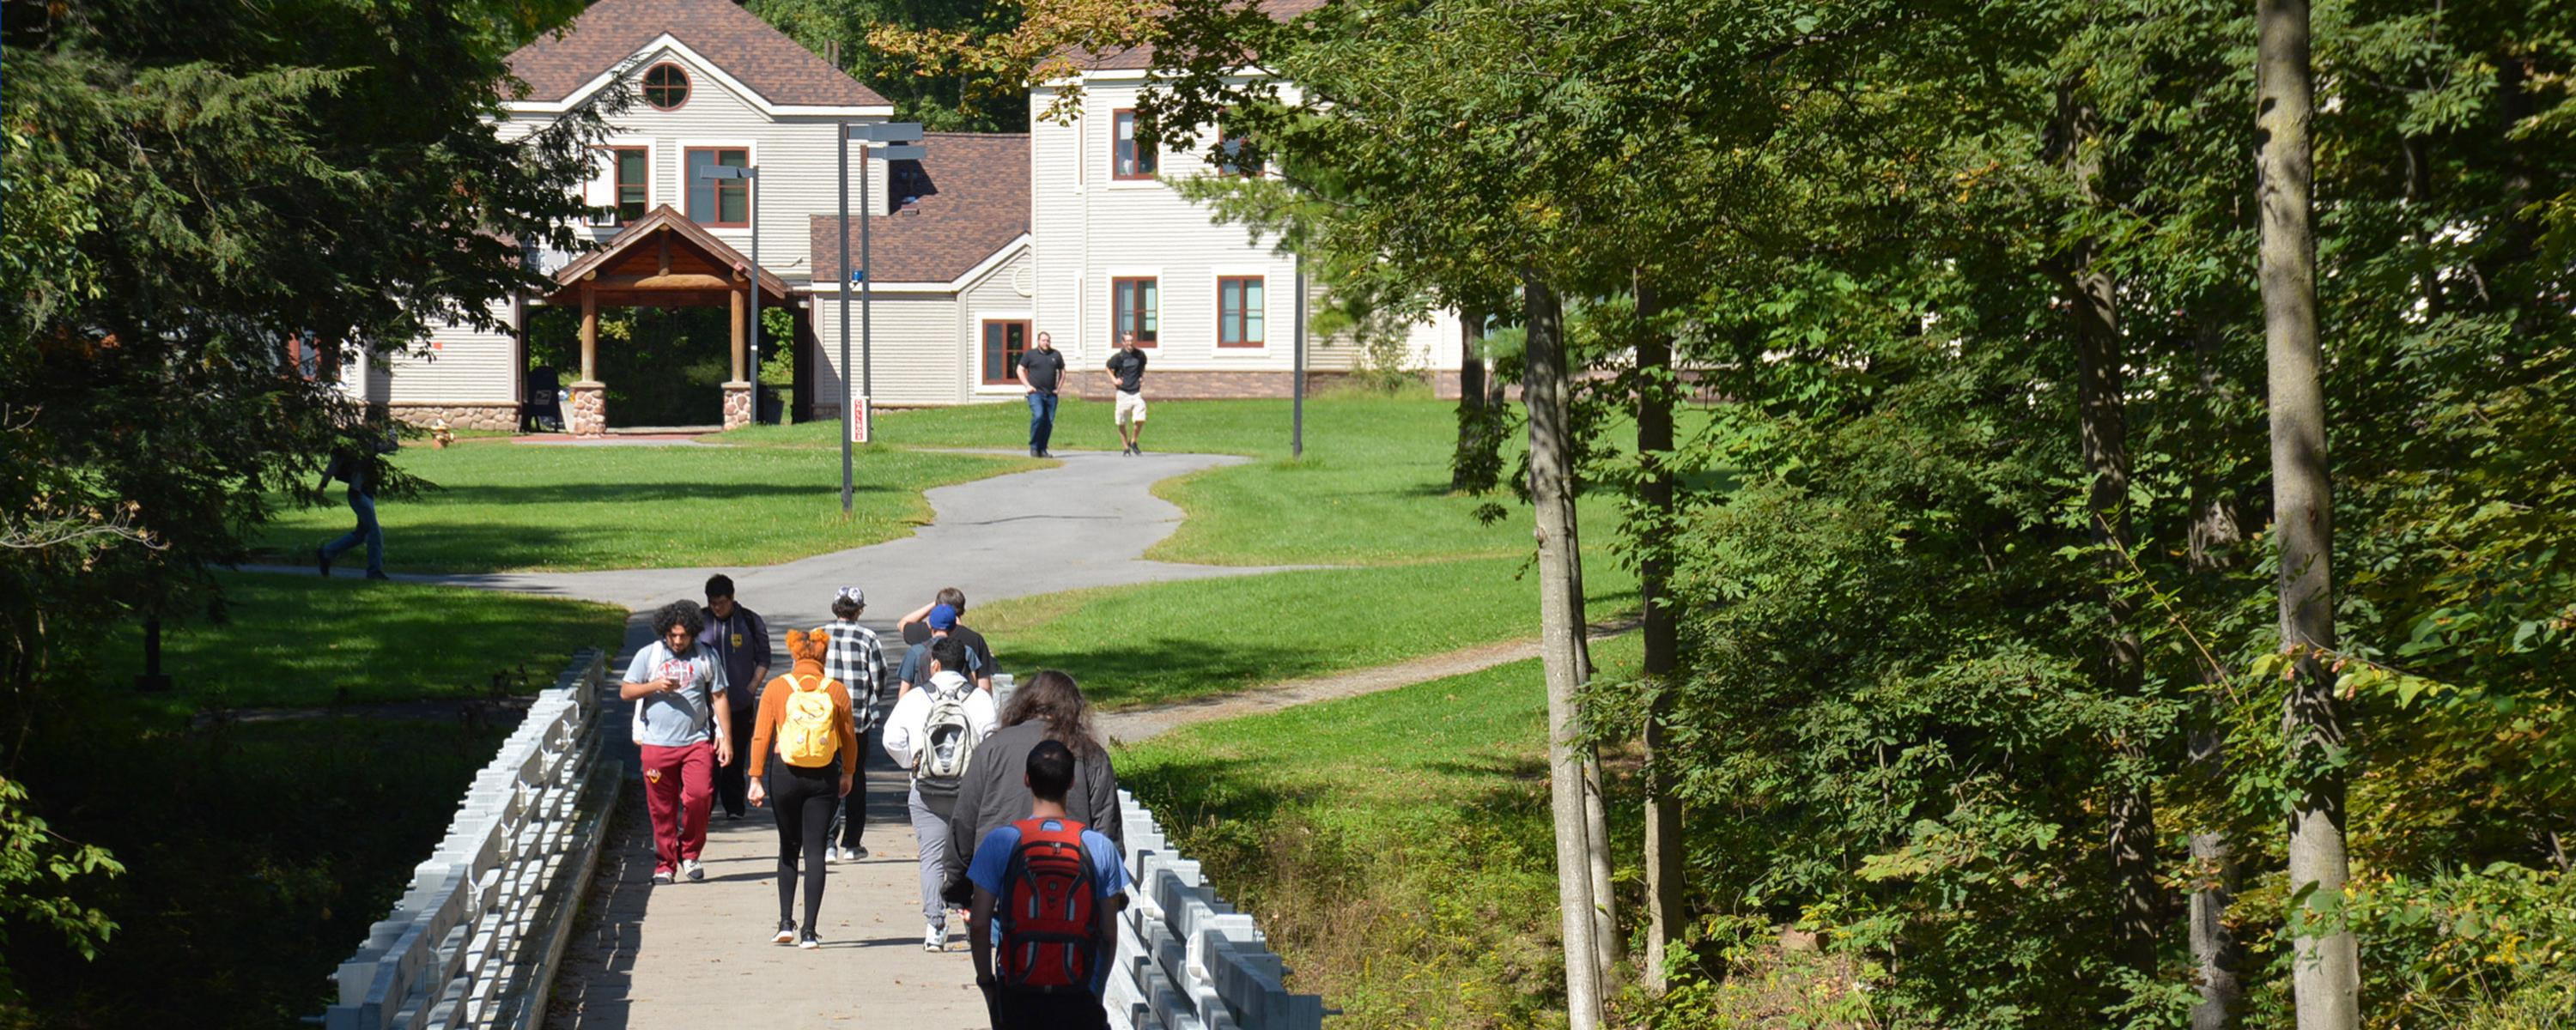 Students walking near Adirondack Residence Hall